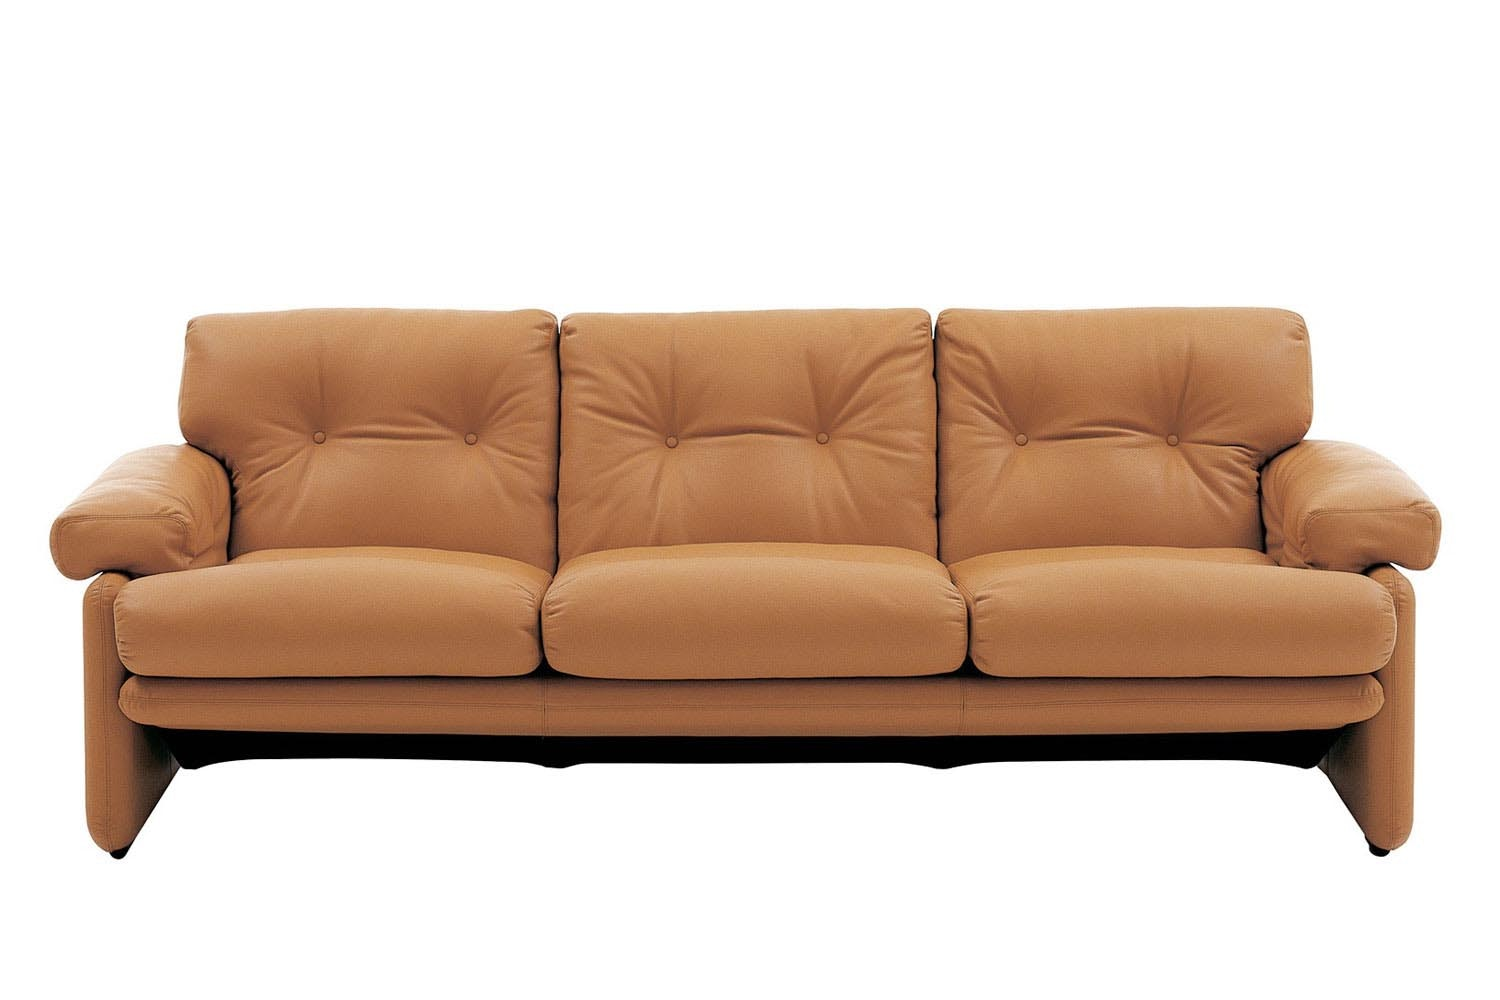 Coronado Sofa by Afra and Tobia Scarpa for B&B Italia